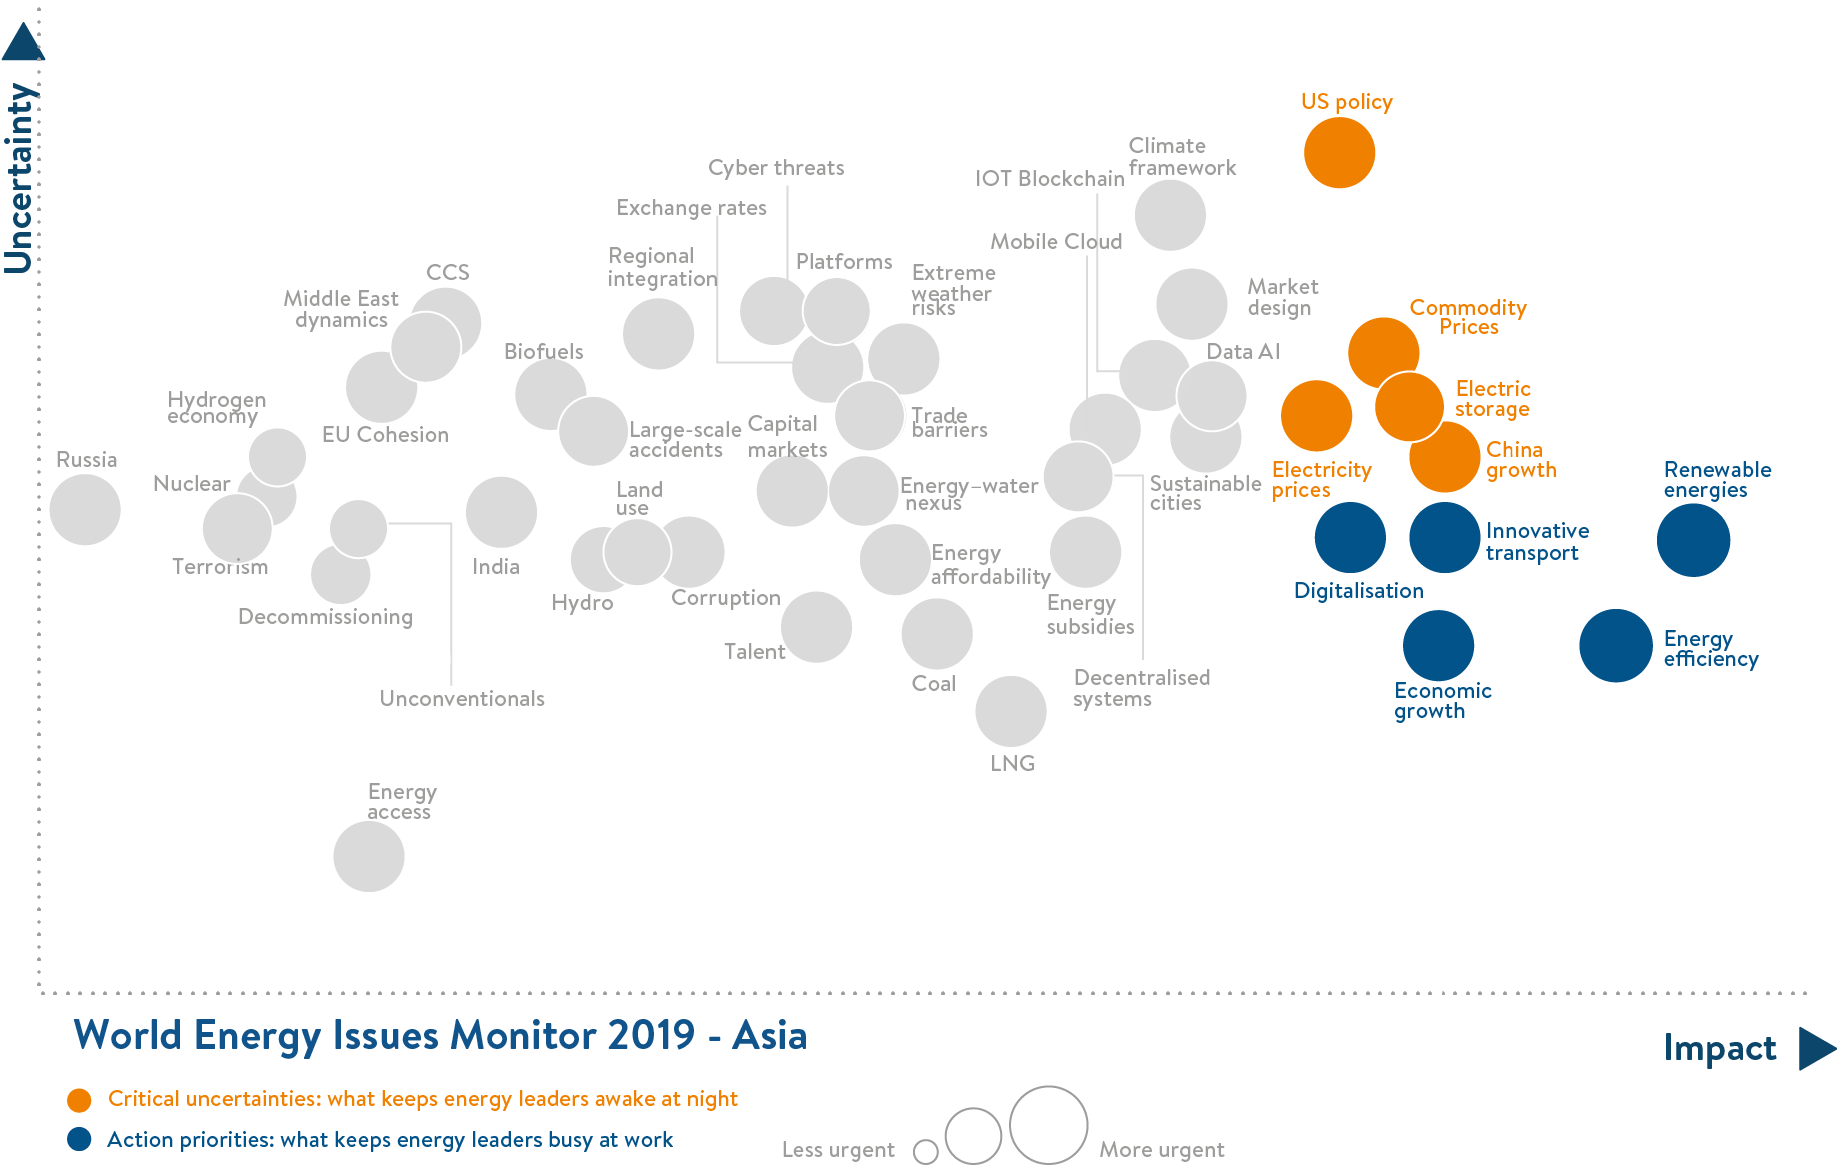 asia, world energy issues monitor, critical uncertainties and action priorities